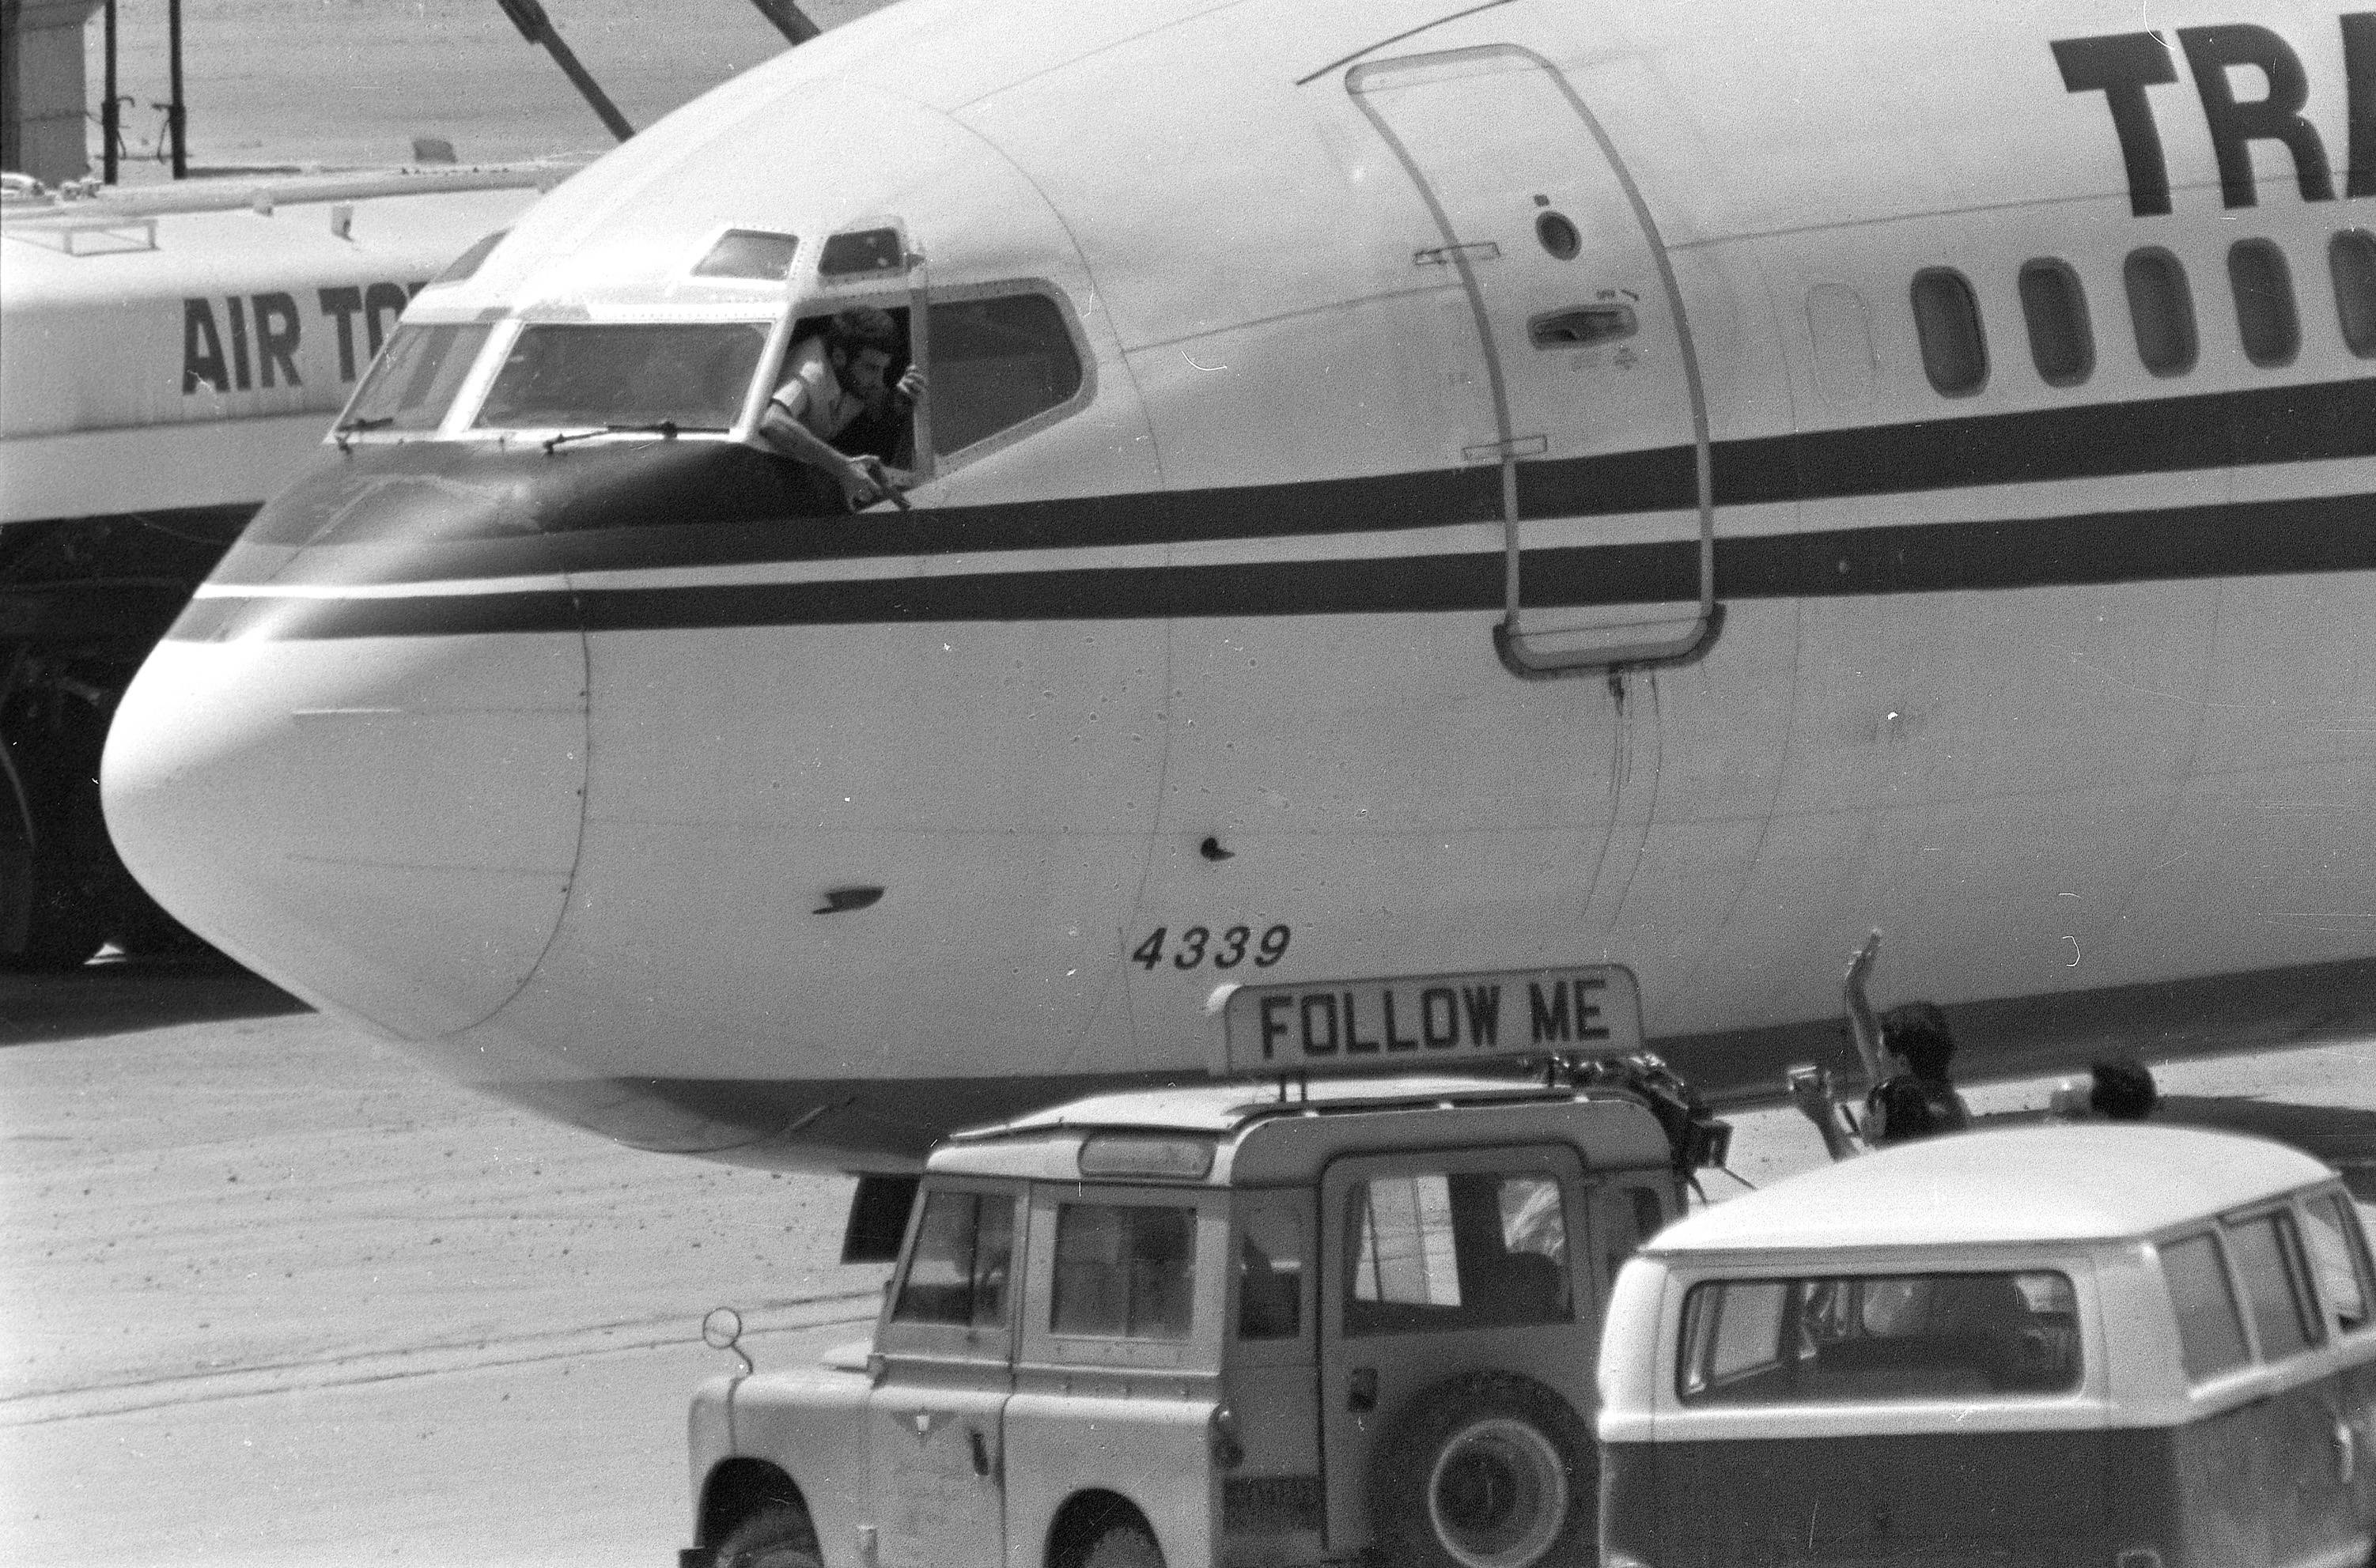 TWA Flight 847 from Athens to Rome was hijacked June 14, 1985, by Shiite Hezbollah militants who forced the plane to land in Beirut, Lebanon. Twenty members of St. Margaret Mary Parish in Algonquin were taken hostage that day and released unharmed after 17 days in captivity.